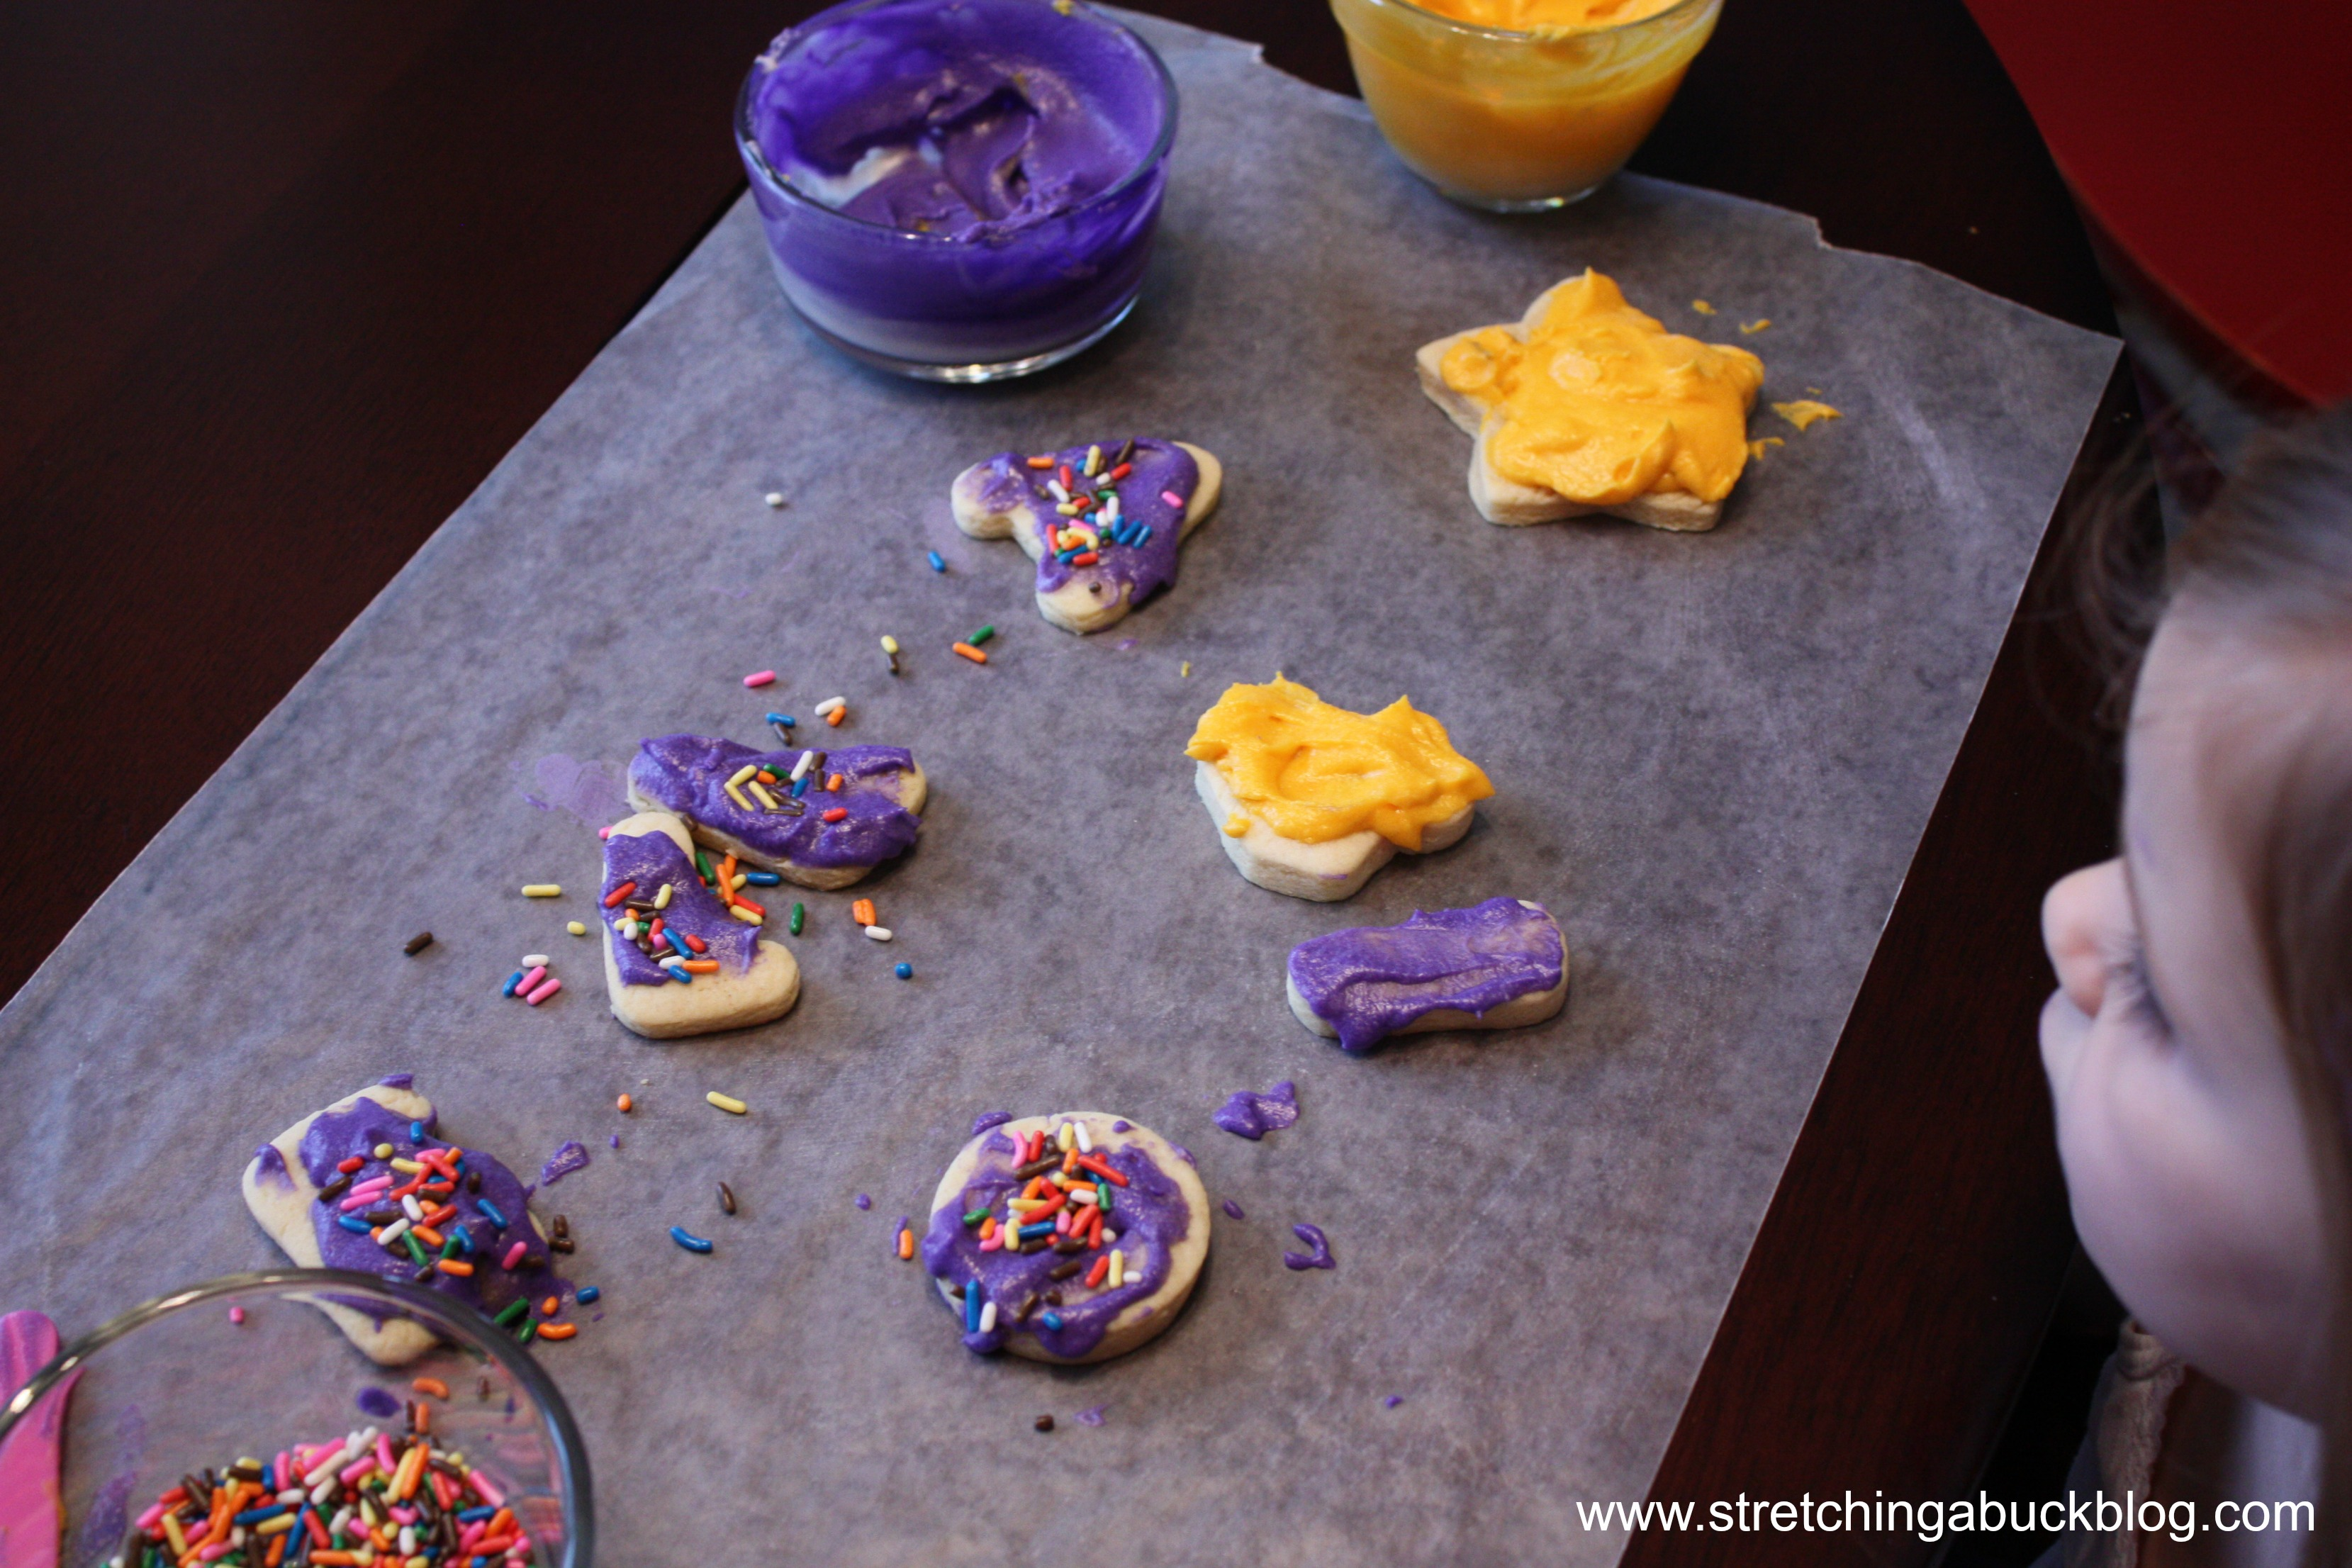 New Year's Activity for Kids | Sugar Cookie Decorating ...